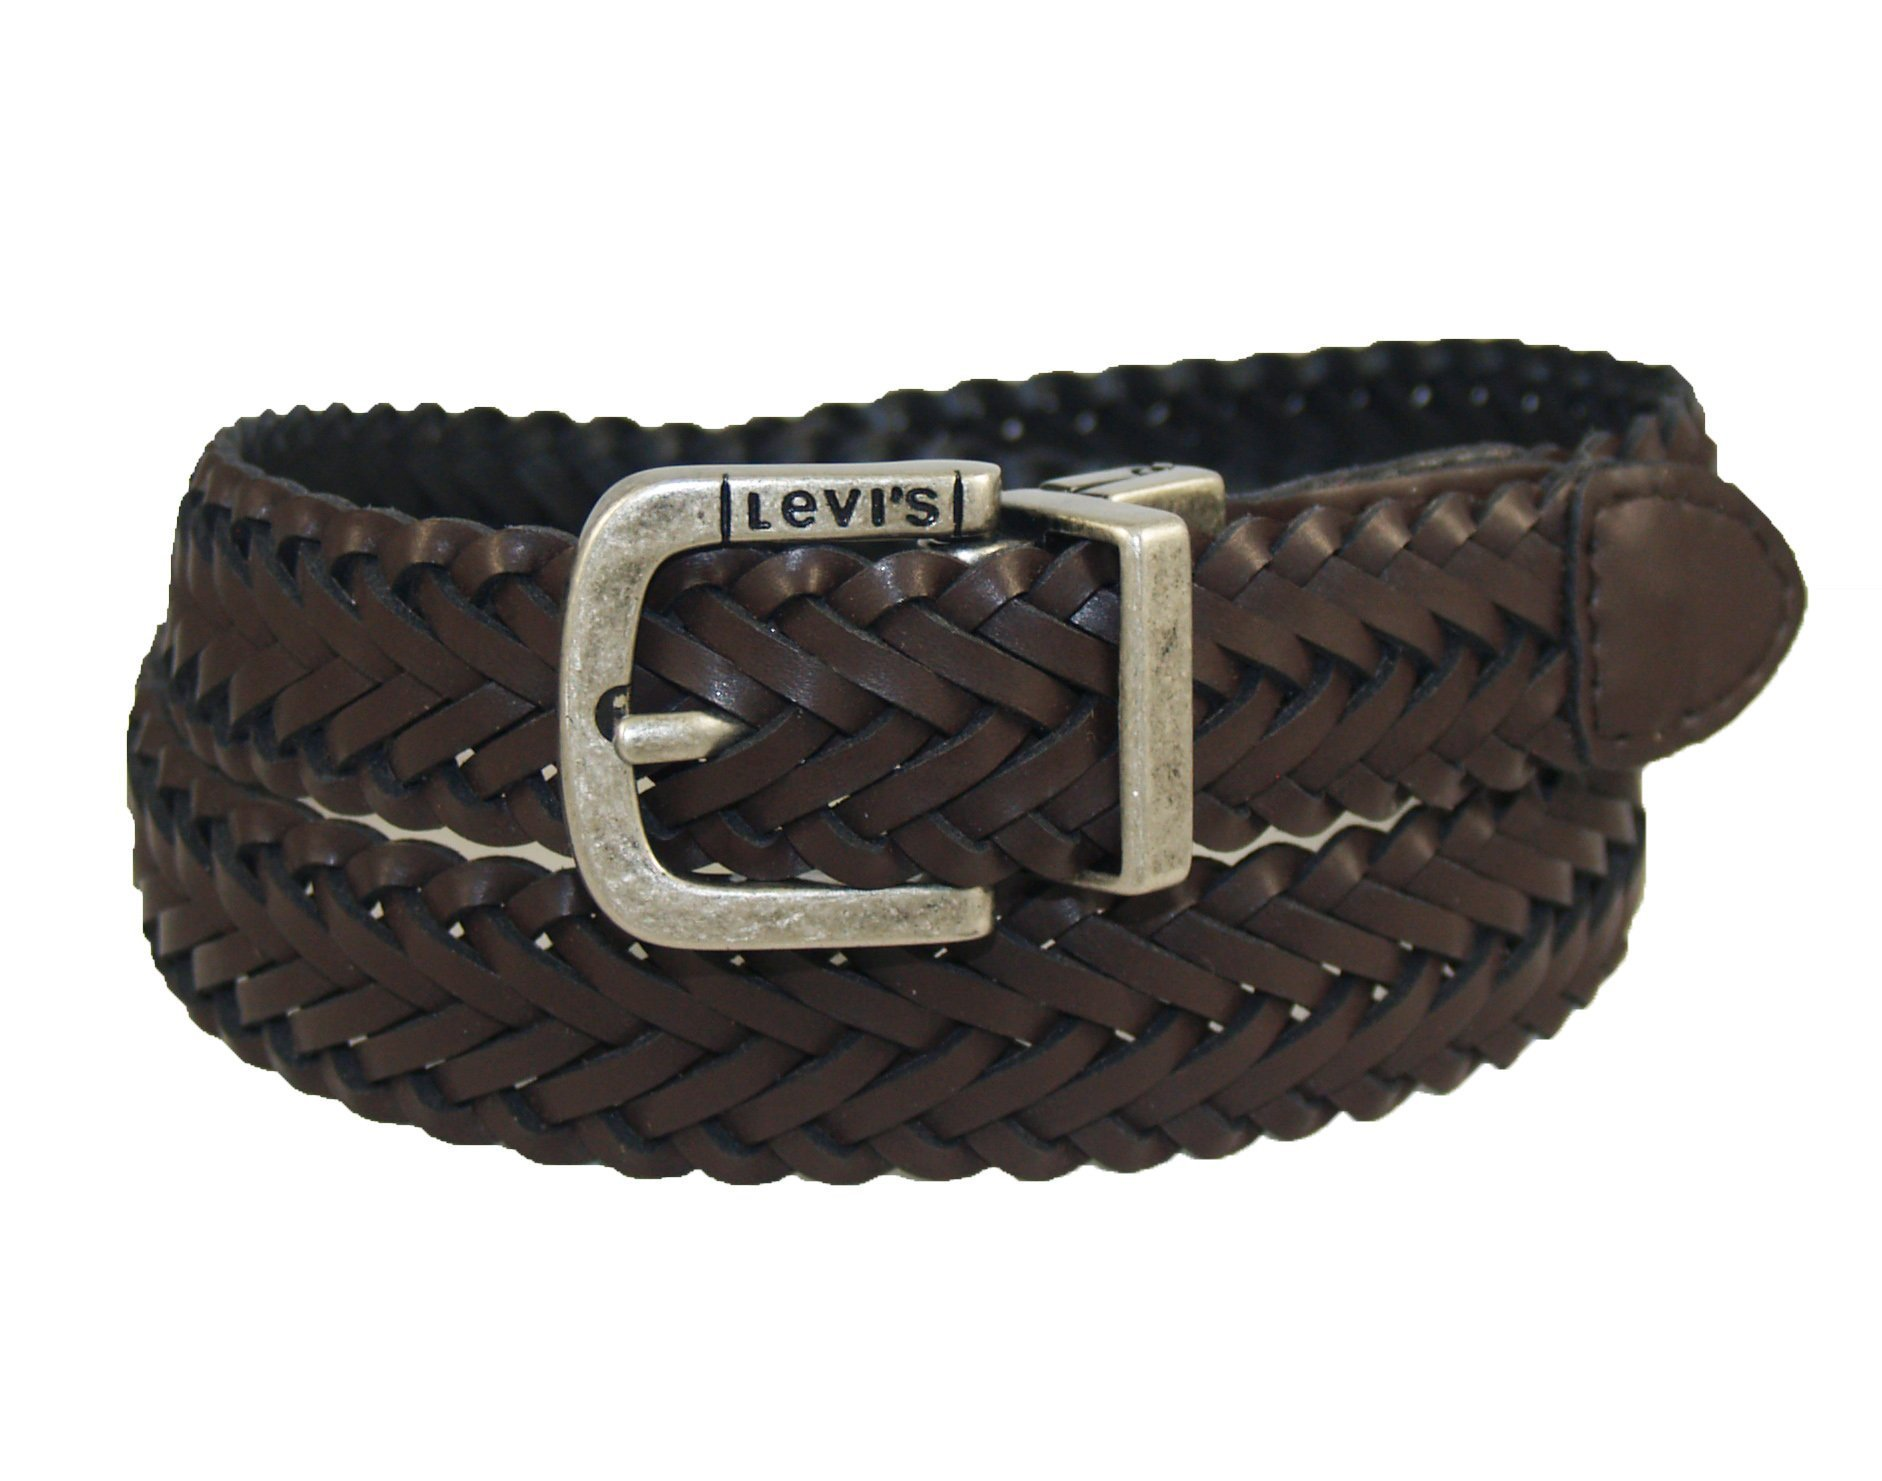 Levi's Men's LeviS Reversible Black To Brown Braid With Logo Buckle,Black/Brown,Small/22-24 Inches